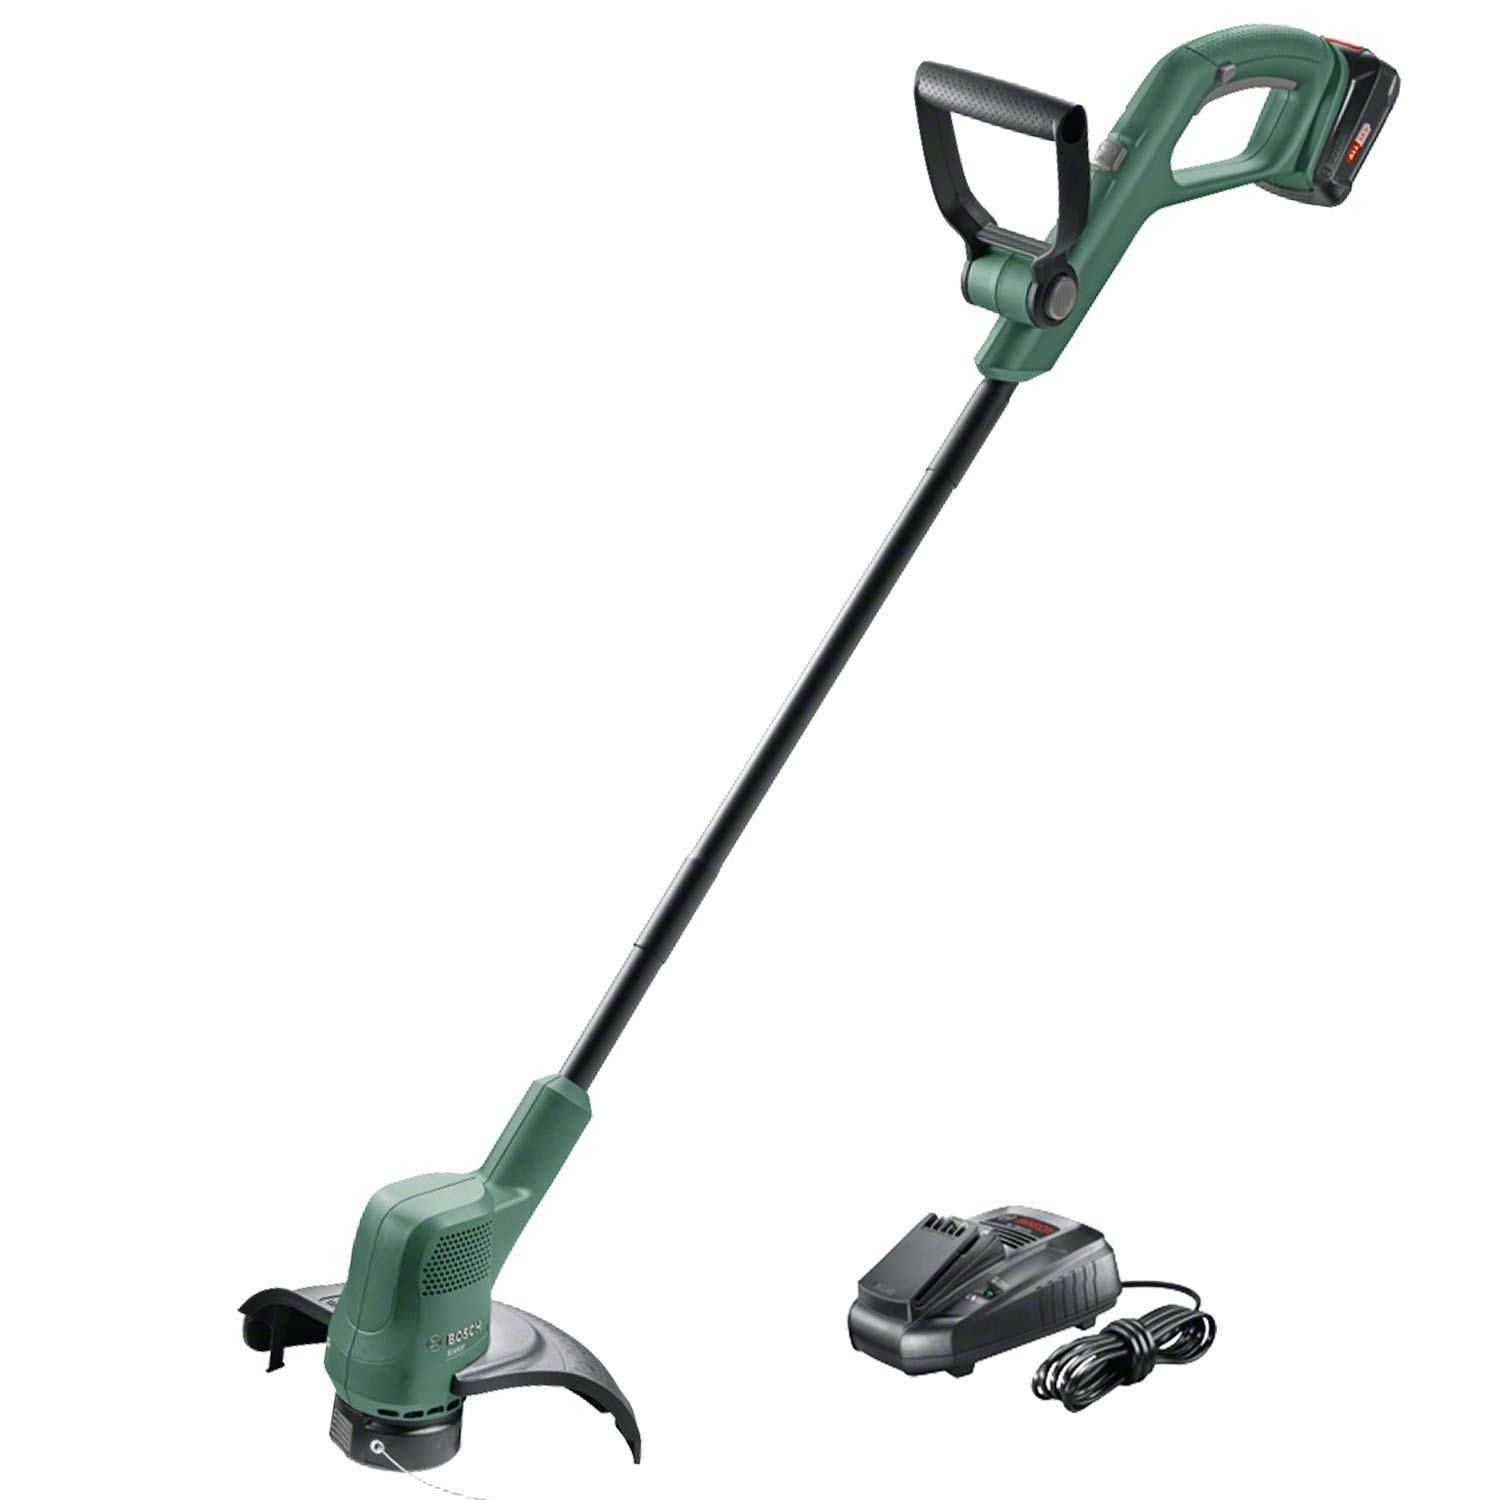 BOSCH 18V Cordless Grass Trimmer Easy Grass Cut 06008C1A70   Ideal for grass and weed cutting, lawn trimming, and edging.   toolforce.ie